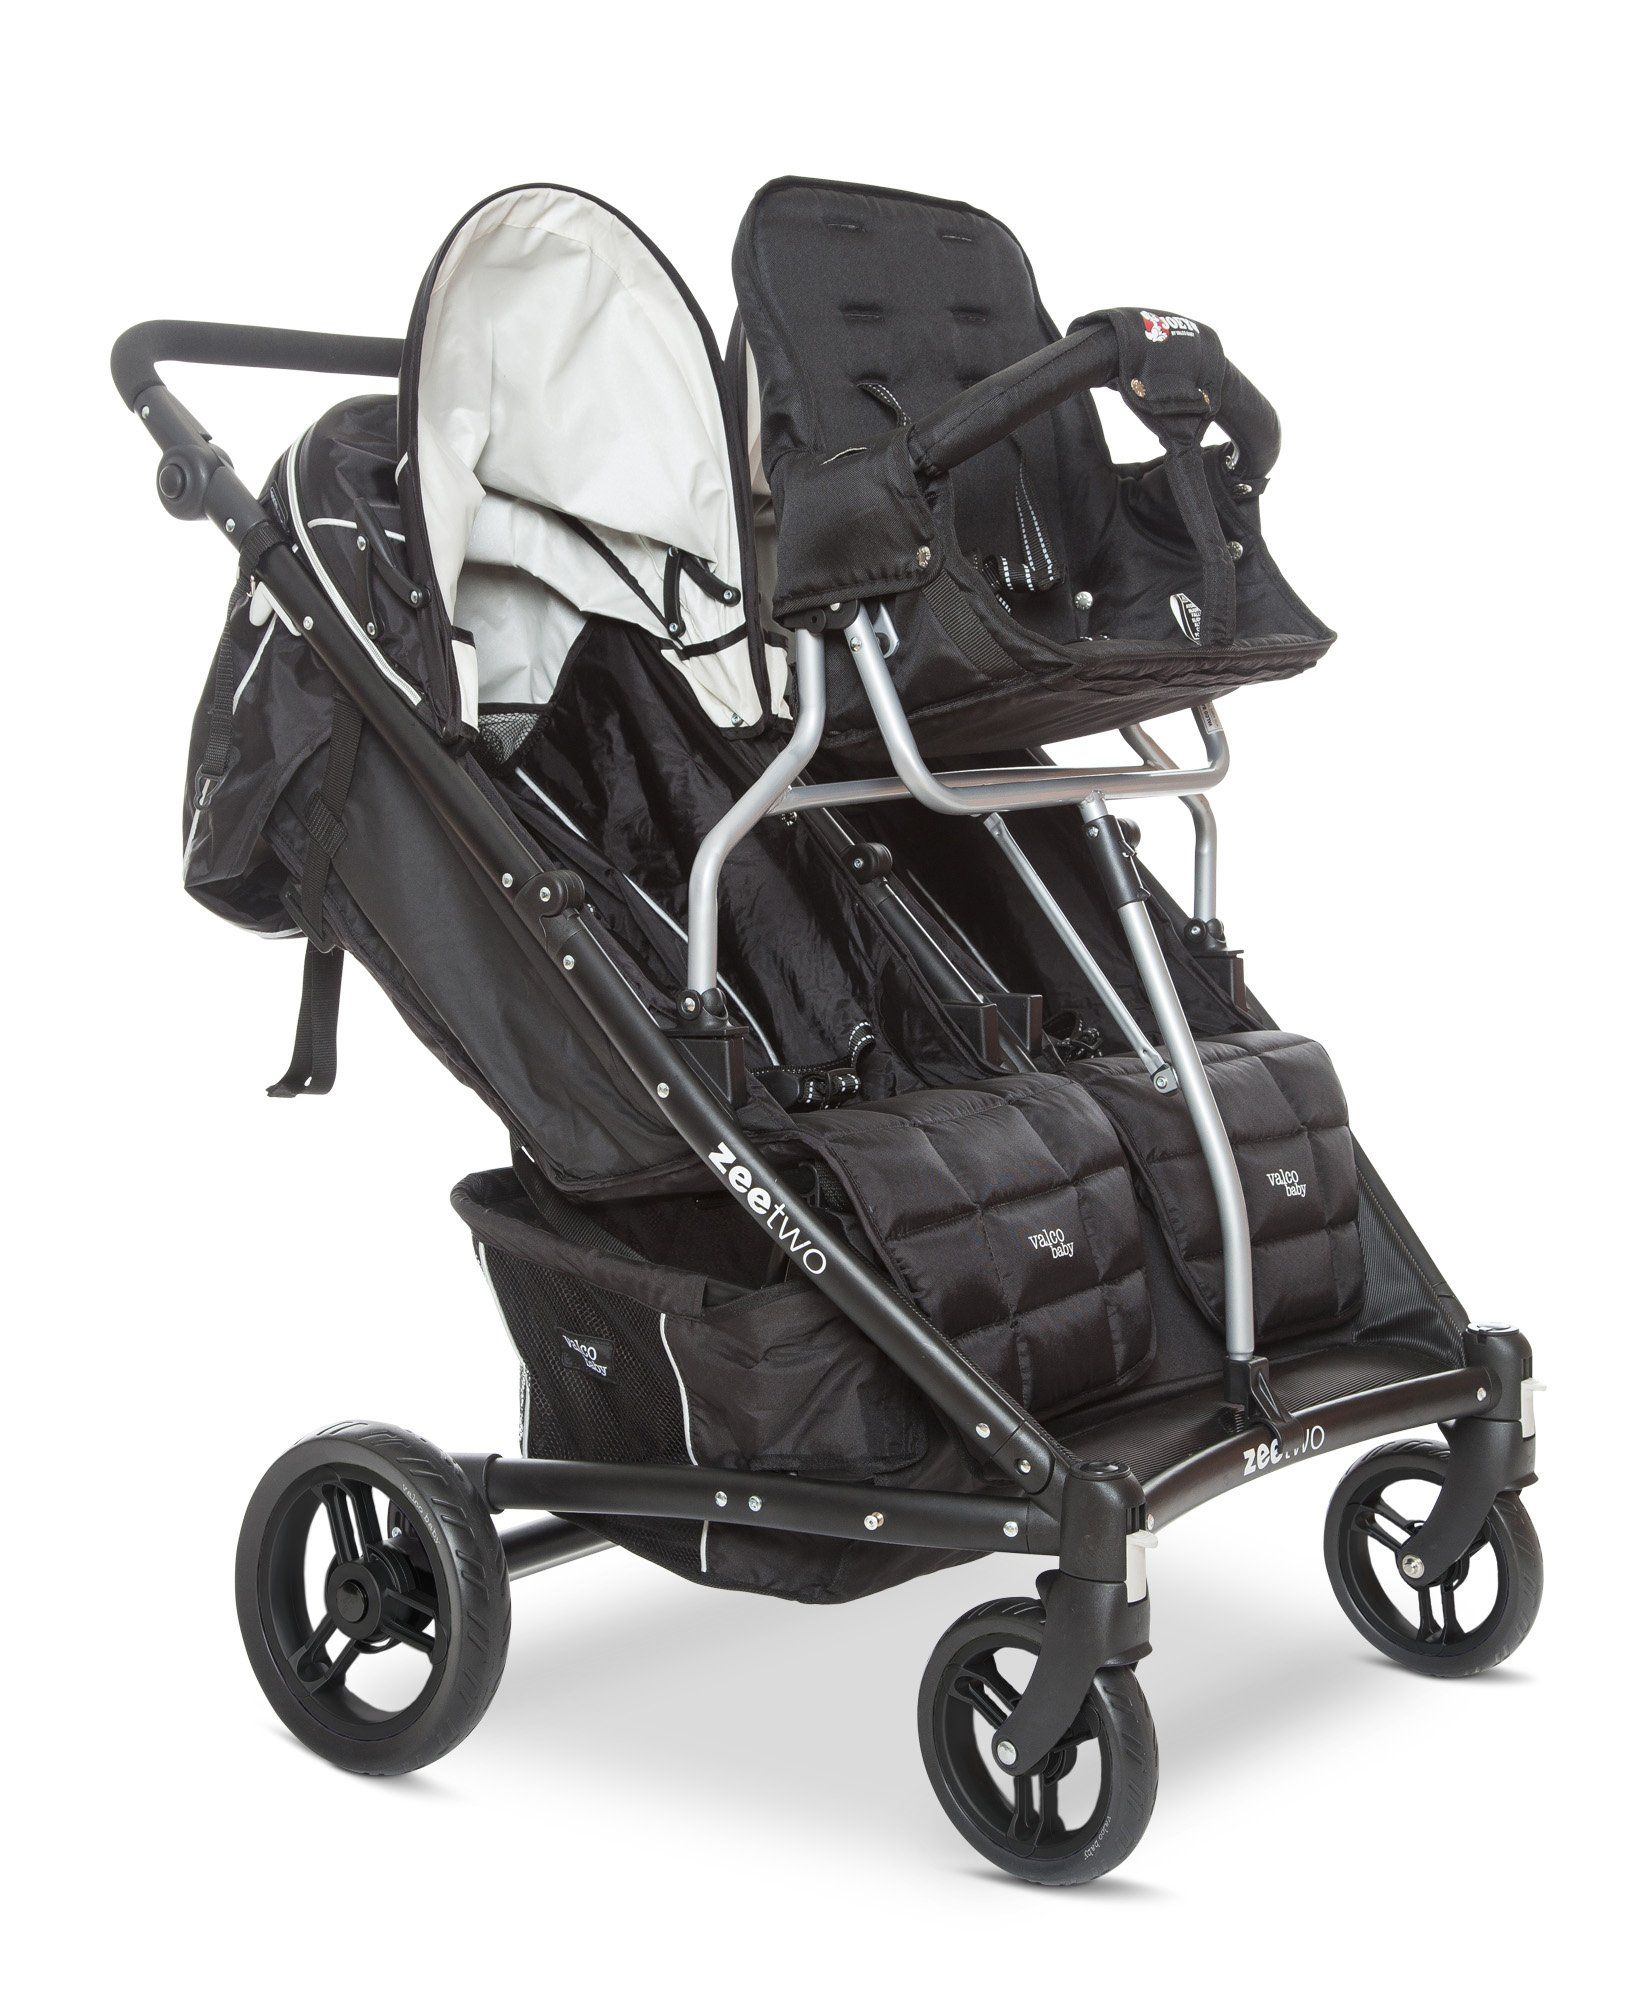 Valco Baby Zee Two Joey Toddler Seat Tandem